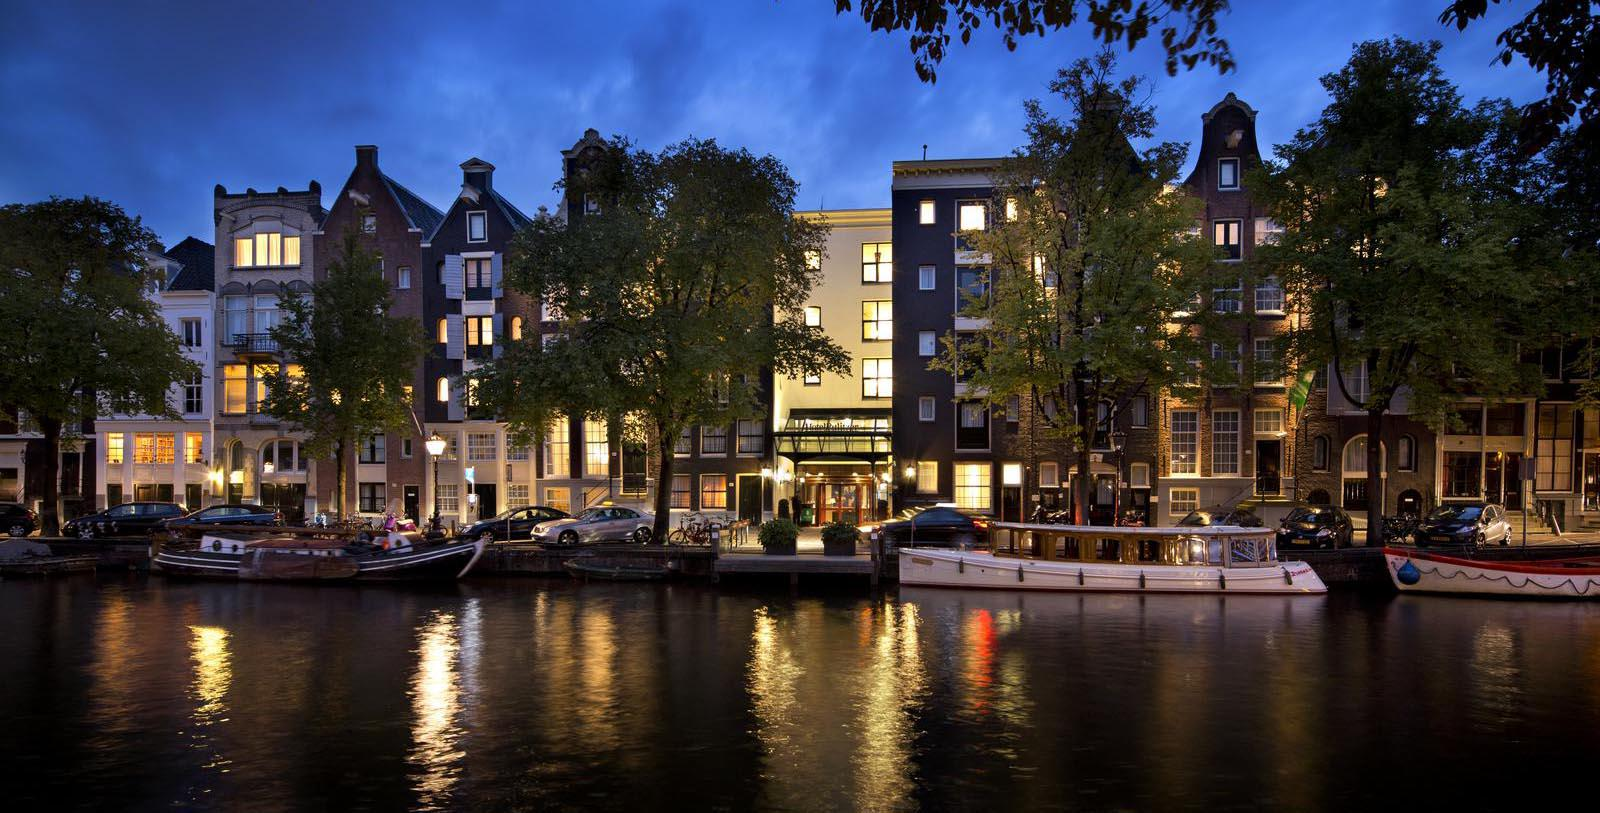 Image of Hotel Exterior Pulitzer Amsterdam, 17th Century, Member of Historic Hotels Worldwide, in Amsterdam, Netherlands, Overview